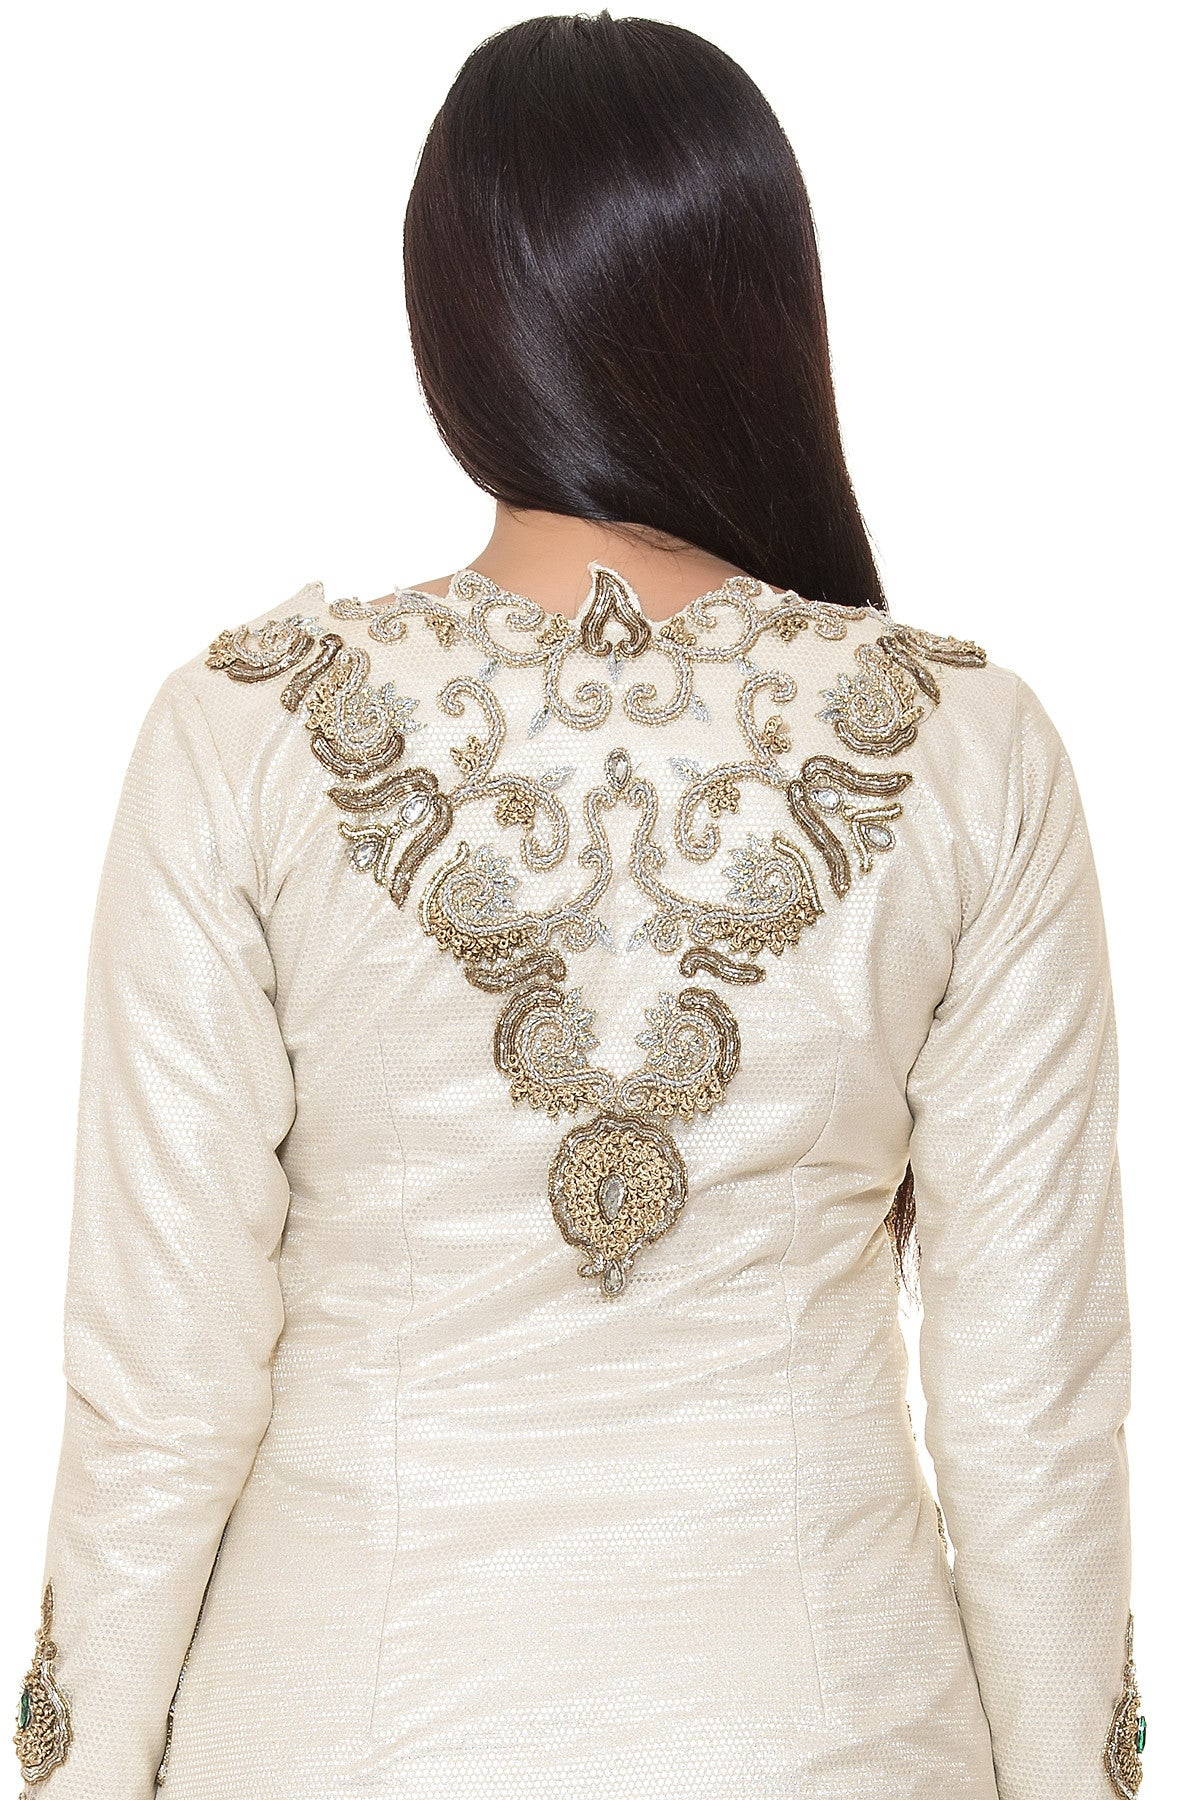 Buy Copper Brocade Lehenga With Ivory Embroidered Jacket Online at indi.fashion